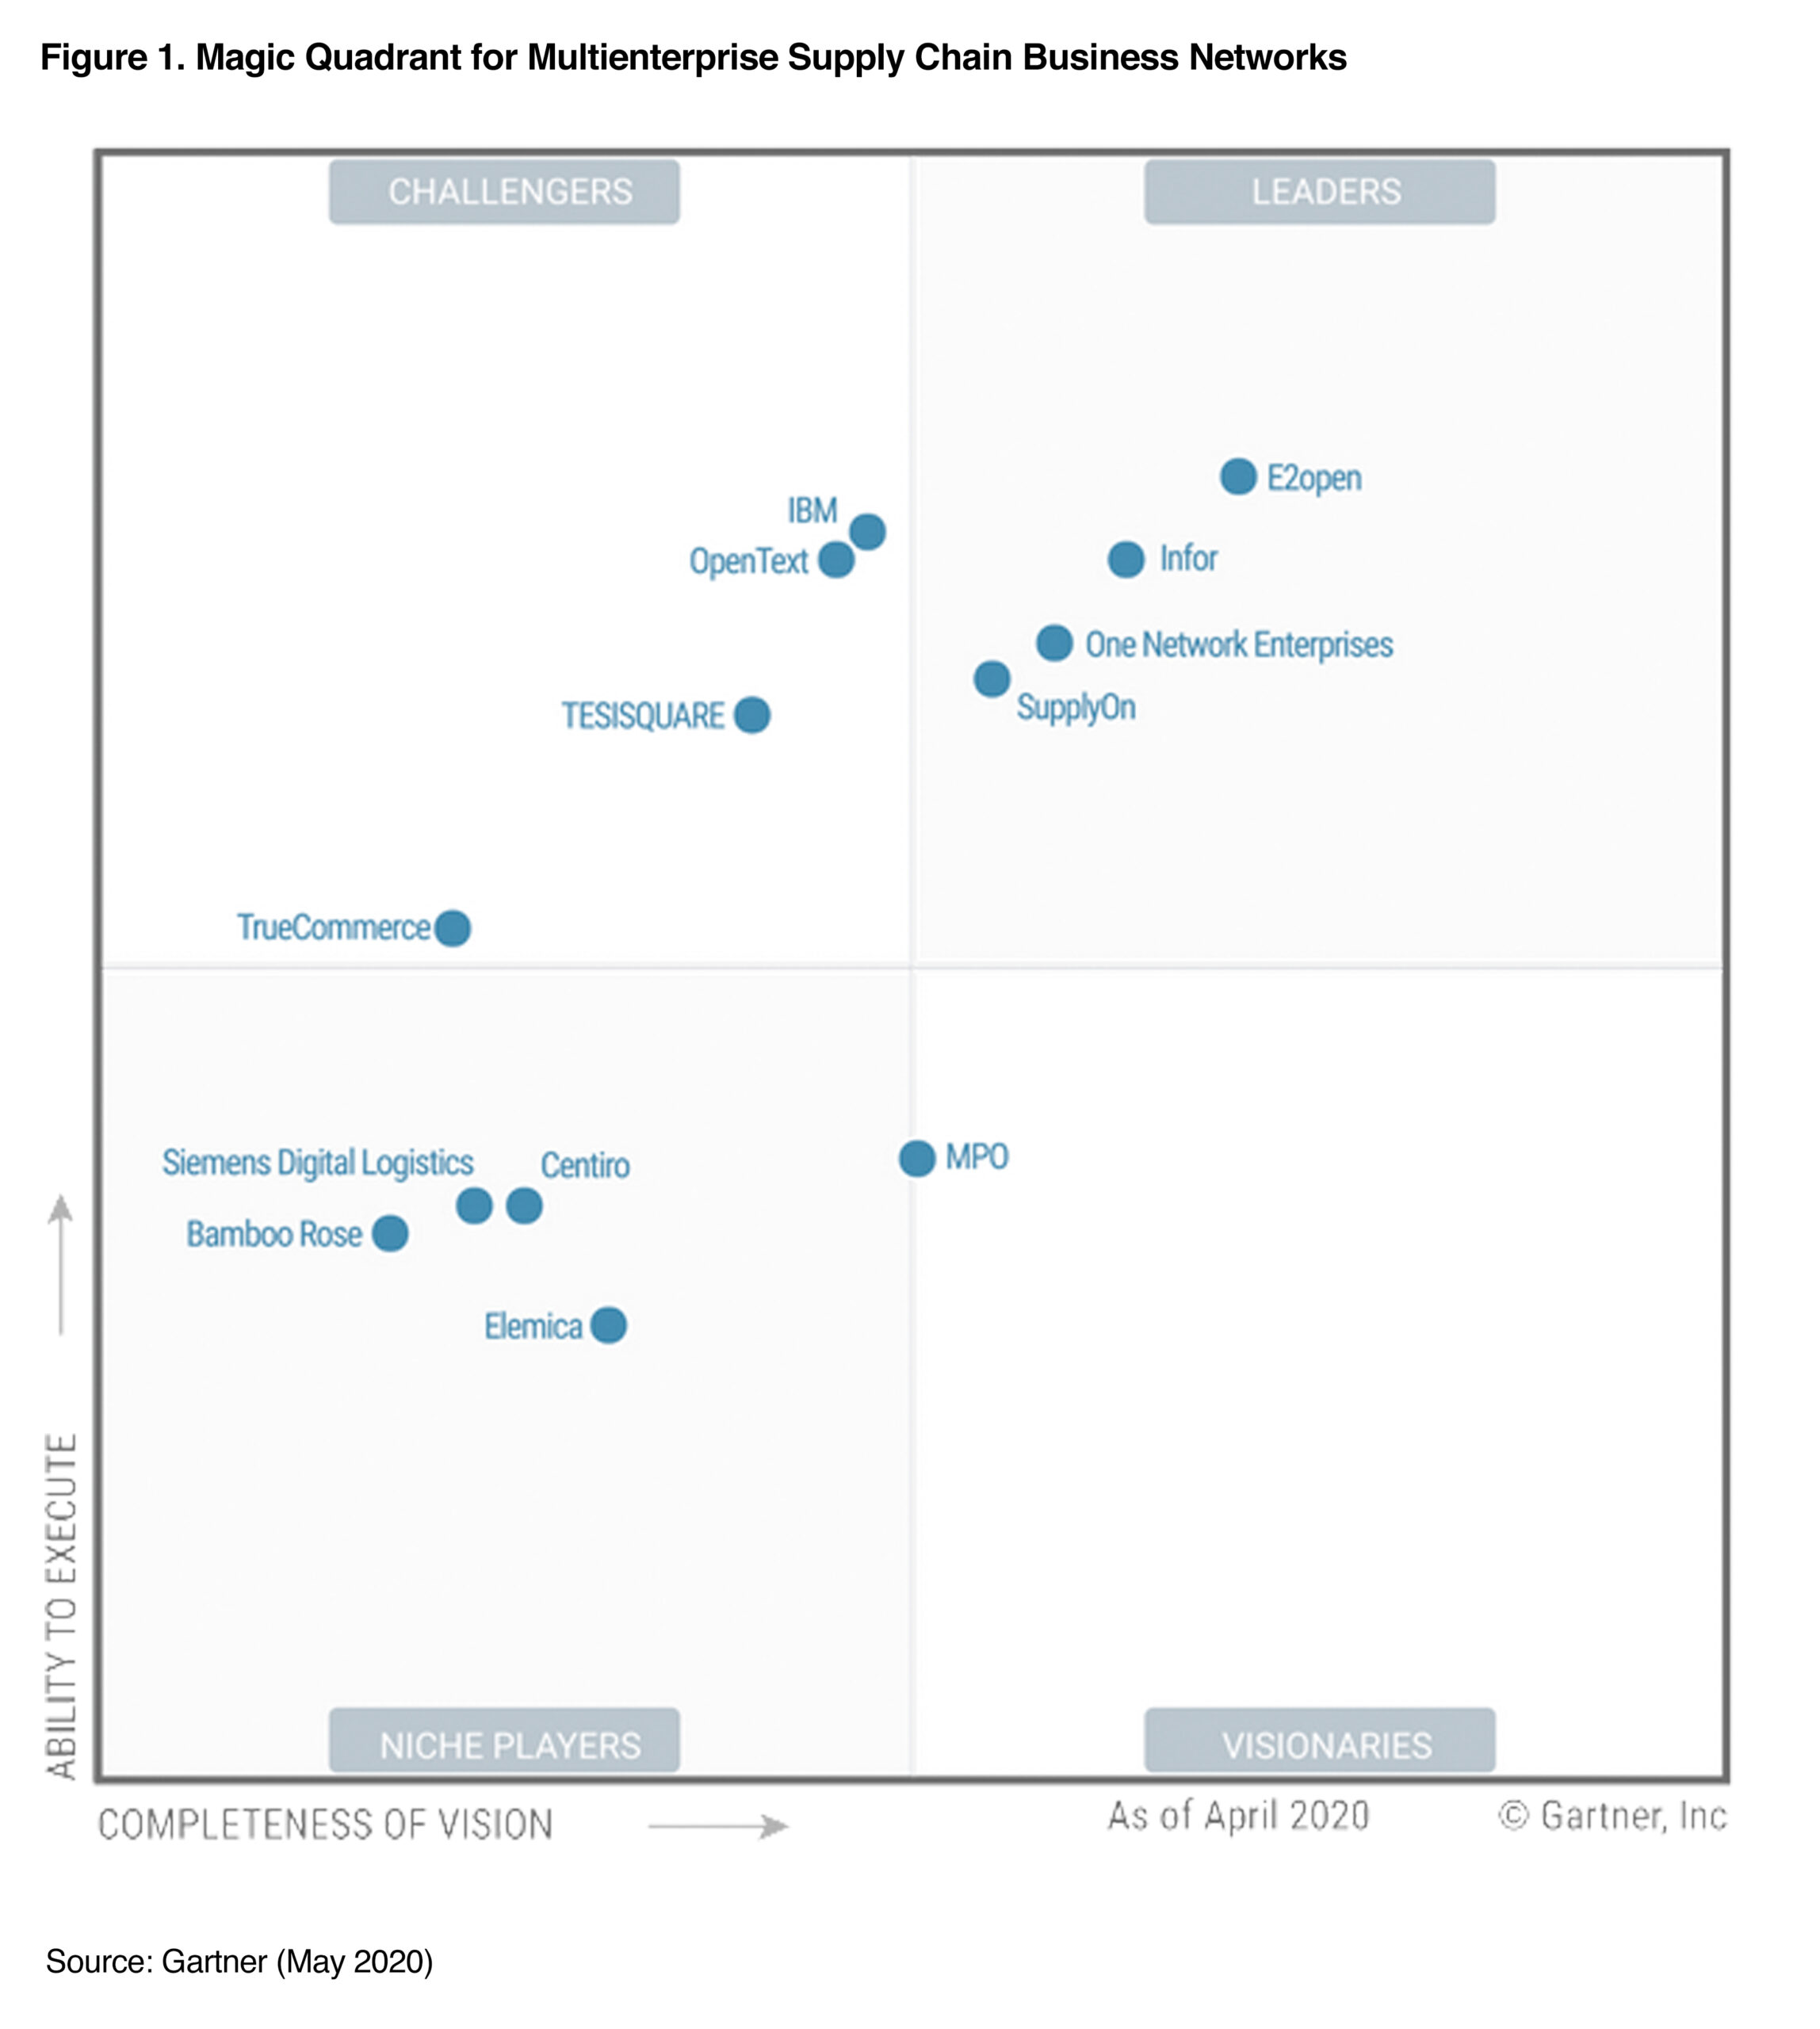 Gartner 2020 Magic Quadrant for Multienterprise Supply Chain Business Networks